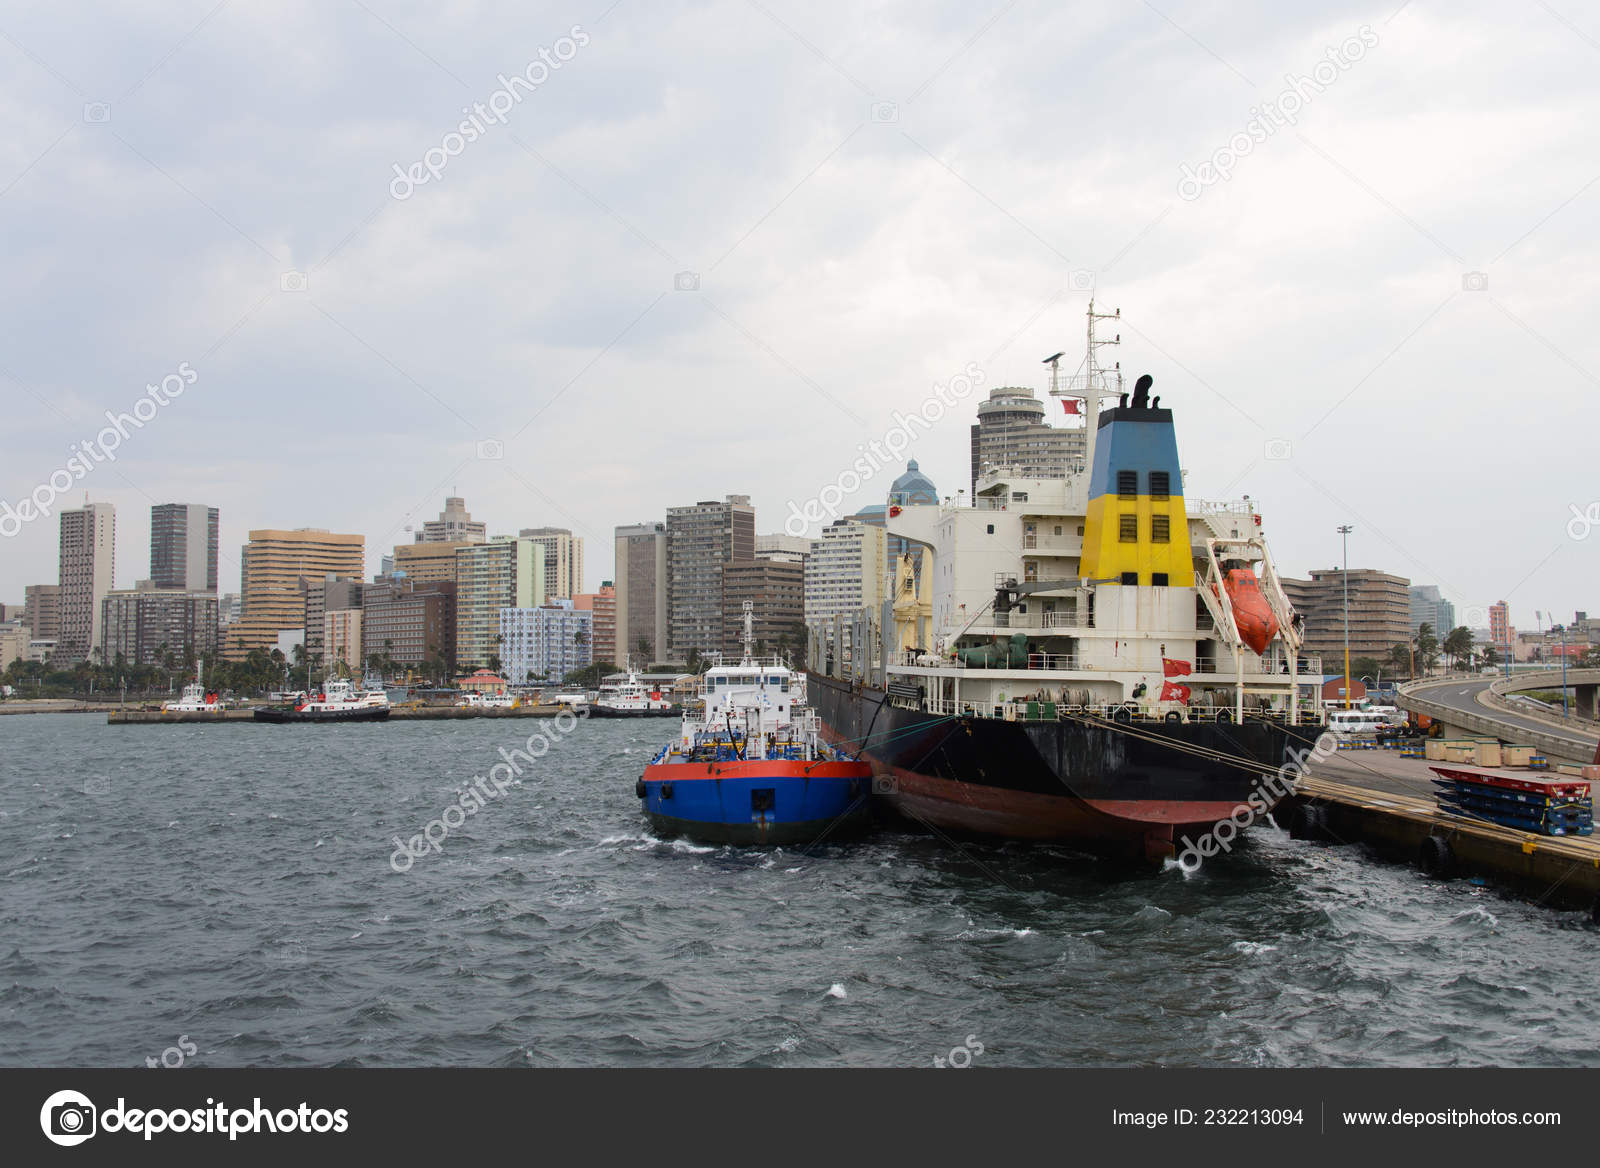 Bunker Barge Moored Big Ship — Stock Photo © Alexey_Seafarer